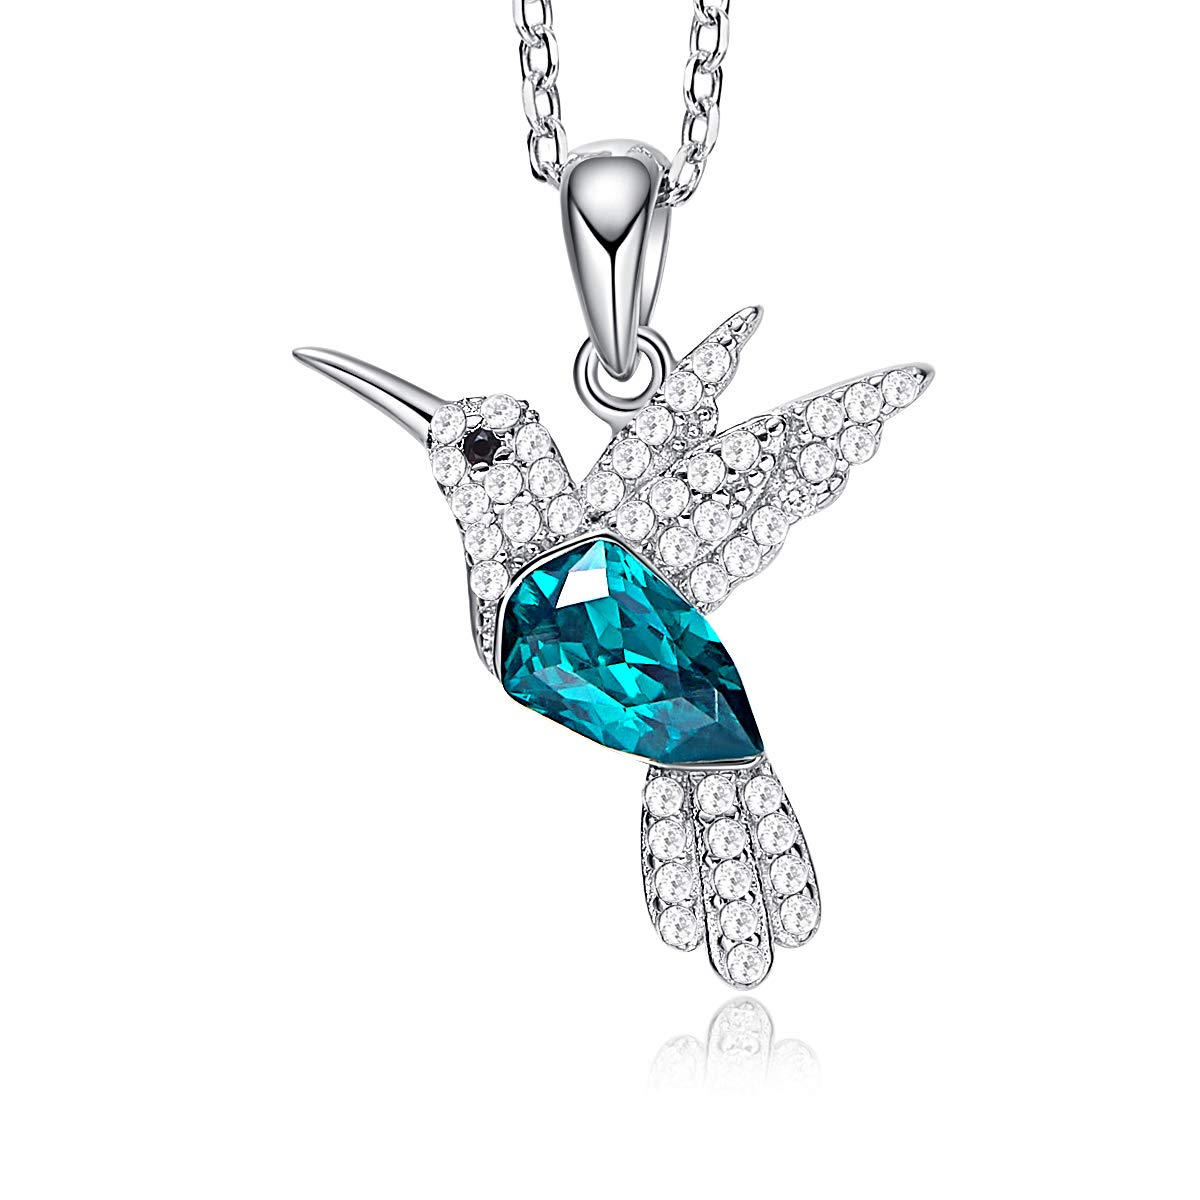 CDE S925 Sterling Silver Necklace Woman Swarovski Crystals Pendant Necklaces Hummingbird Fine Jewelry Gift for Her by CDE (Image #2)